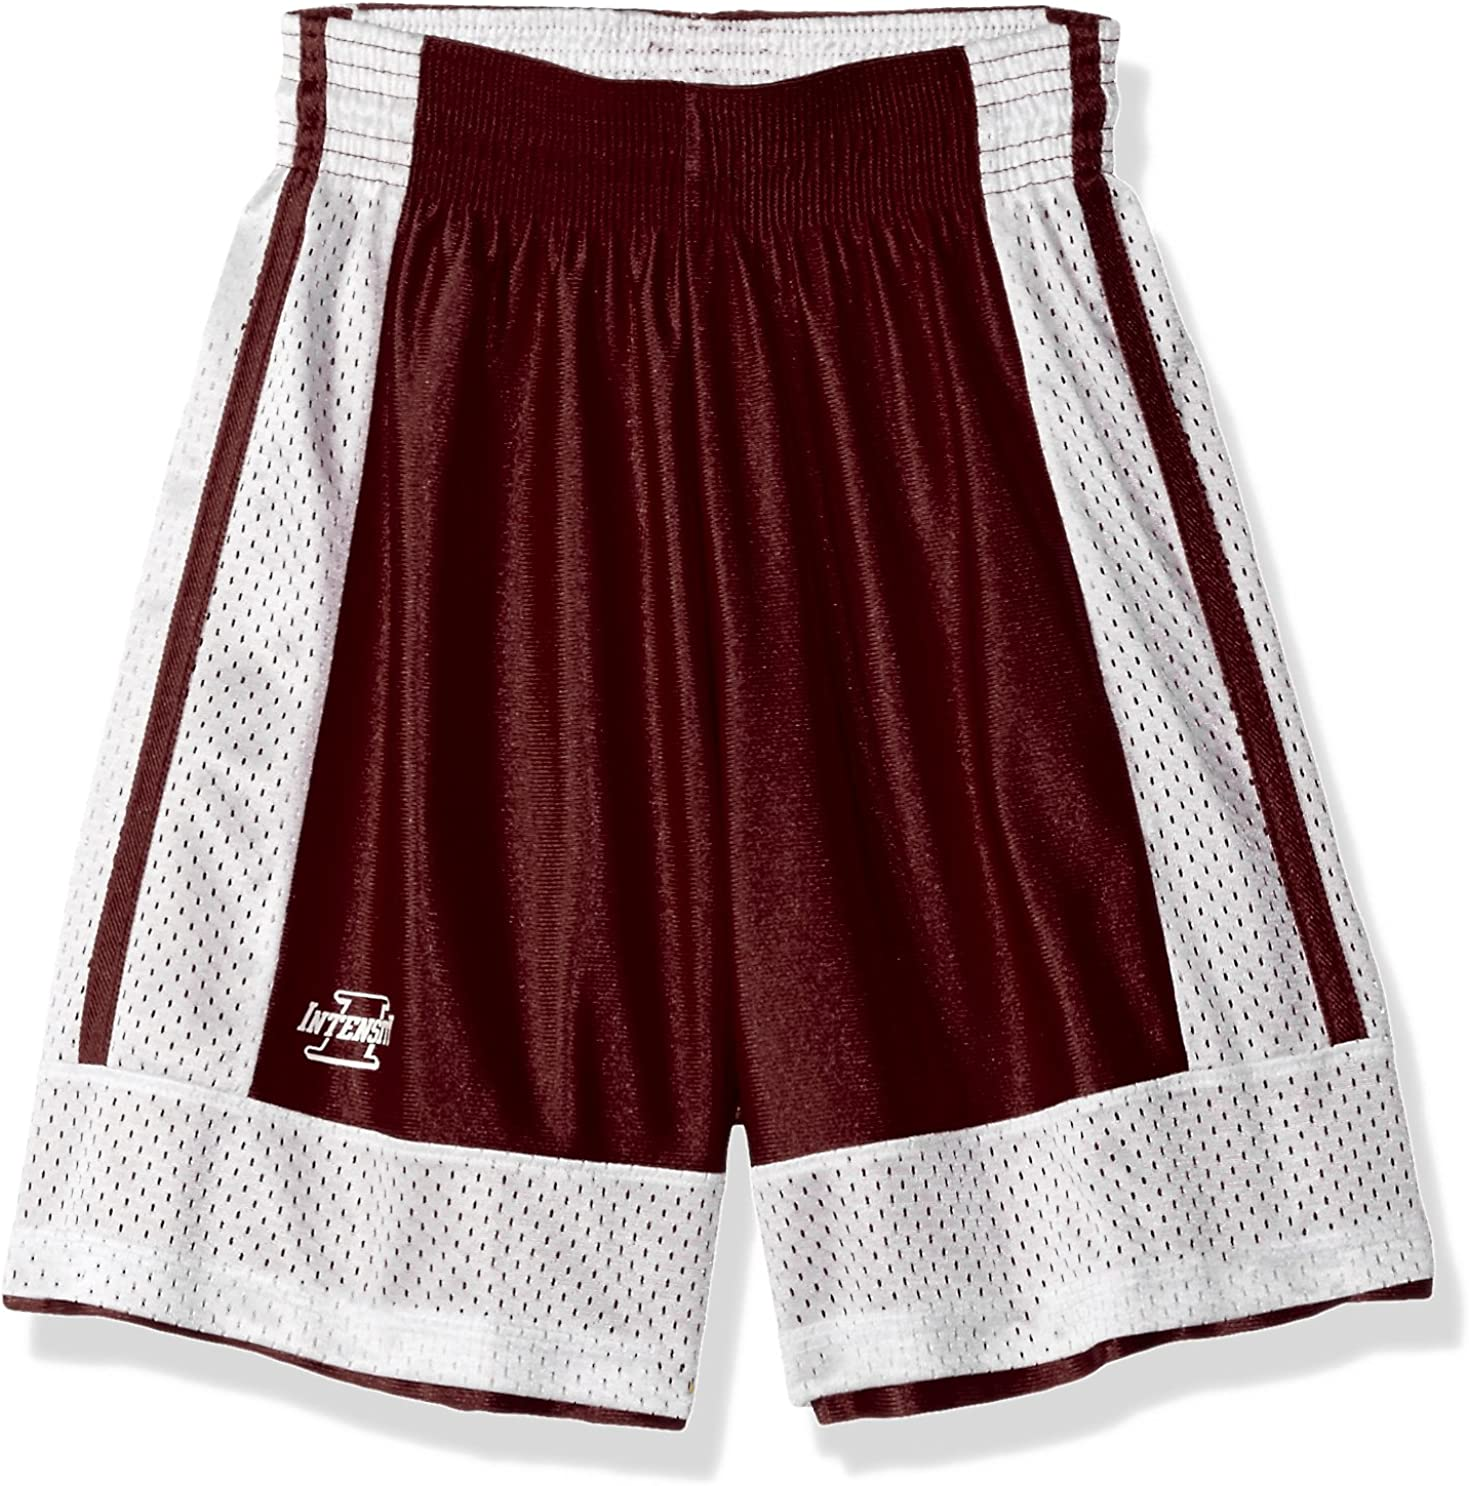 Intensity Boys Youth Two Way Basketball Short